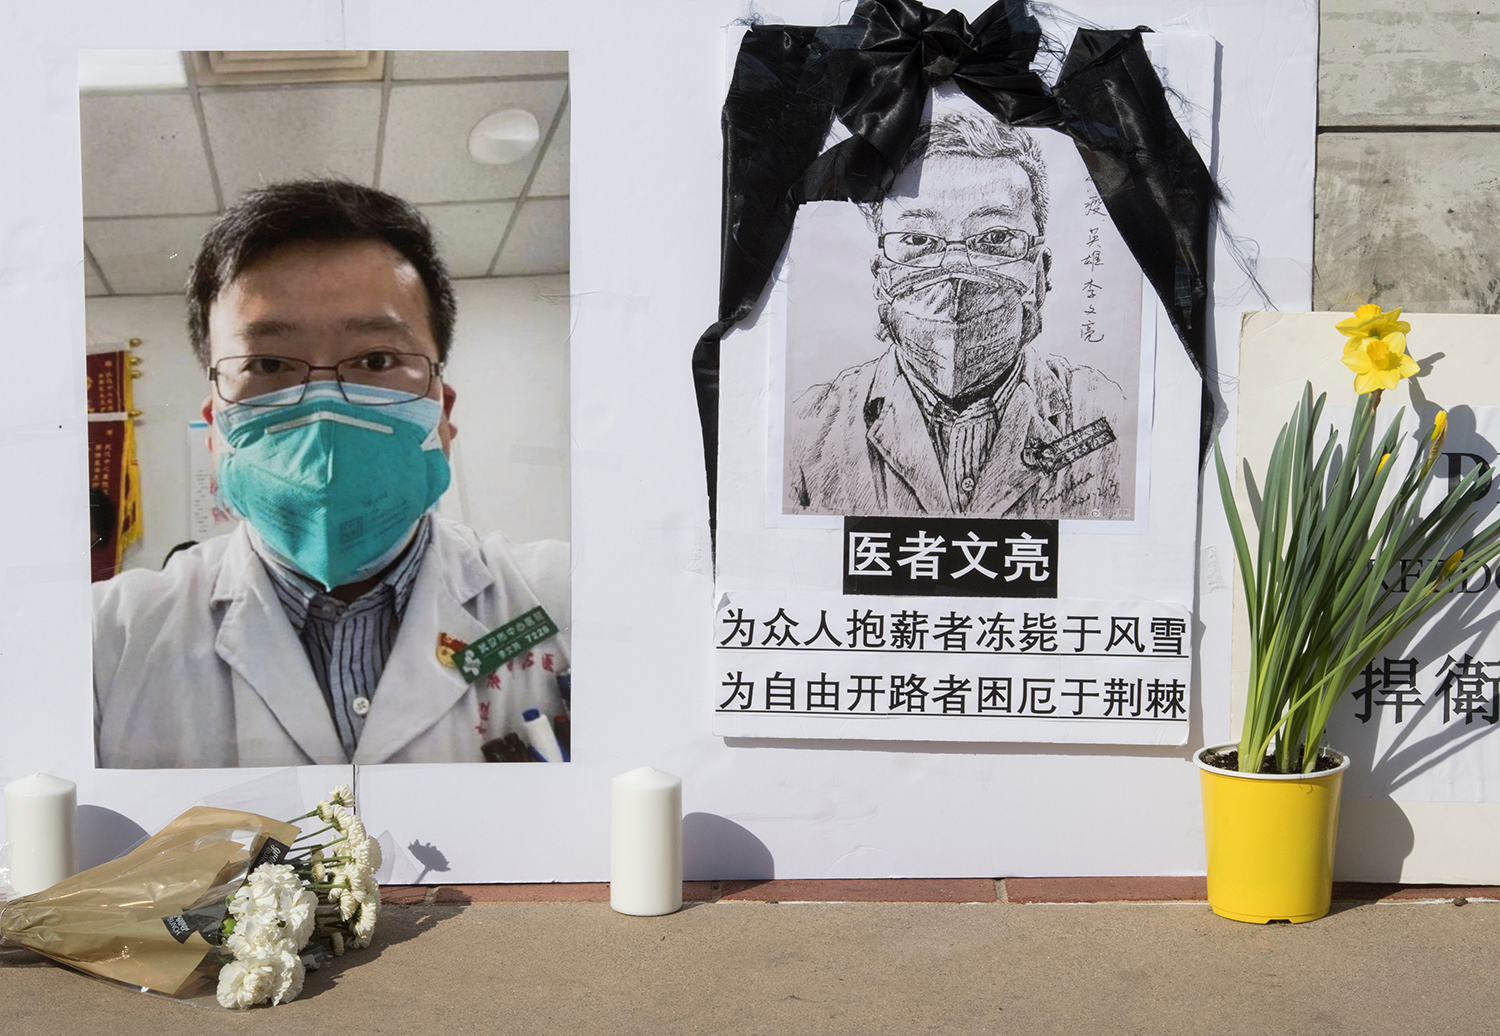 A memorial to Dr. Li Wenliang, the Wuhan ophthalmologist who was a whistleblower about the severity of the coronavirus outbreak before dying of COVID-19, outside the UCLA campus in Westwood, California, on Feb. 15, 2020.